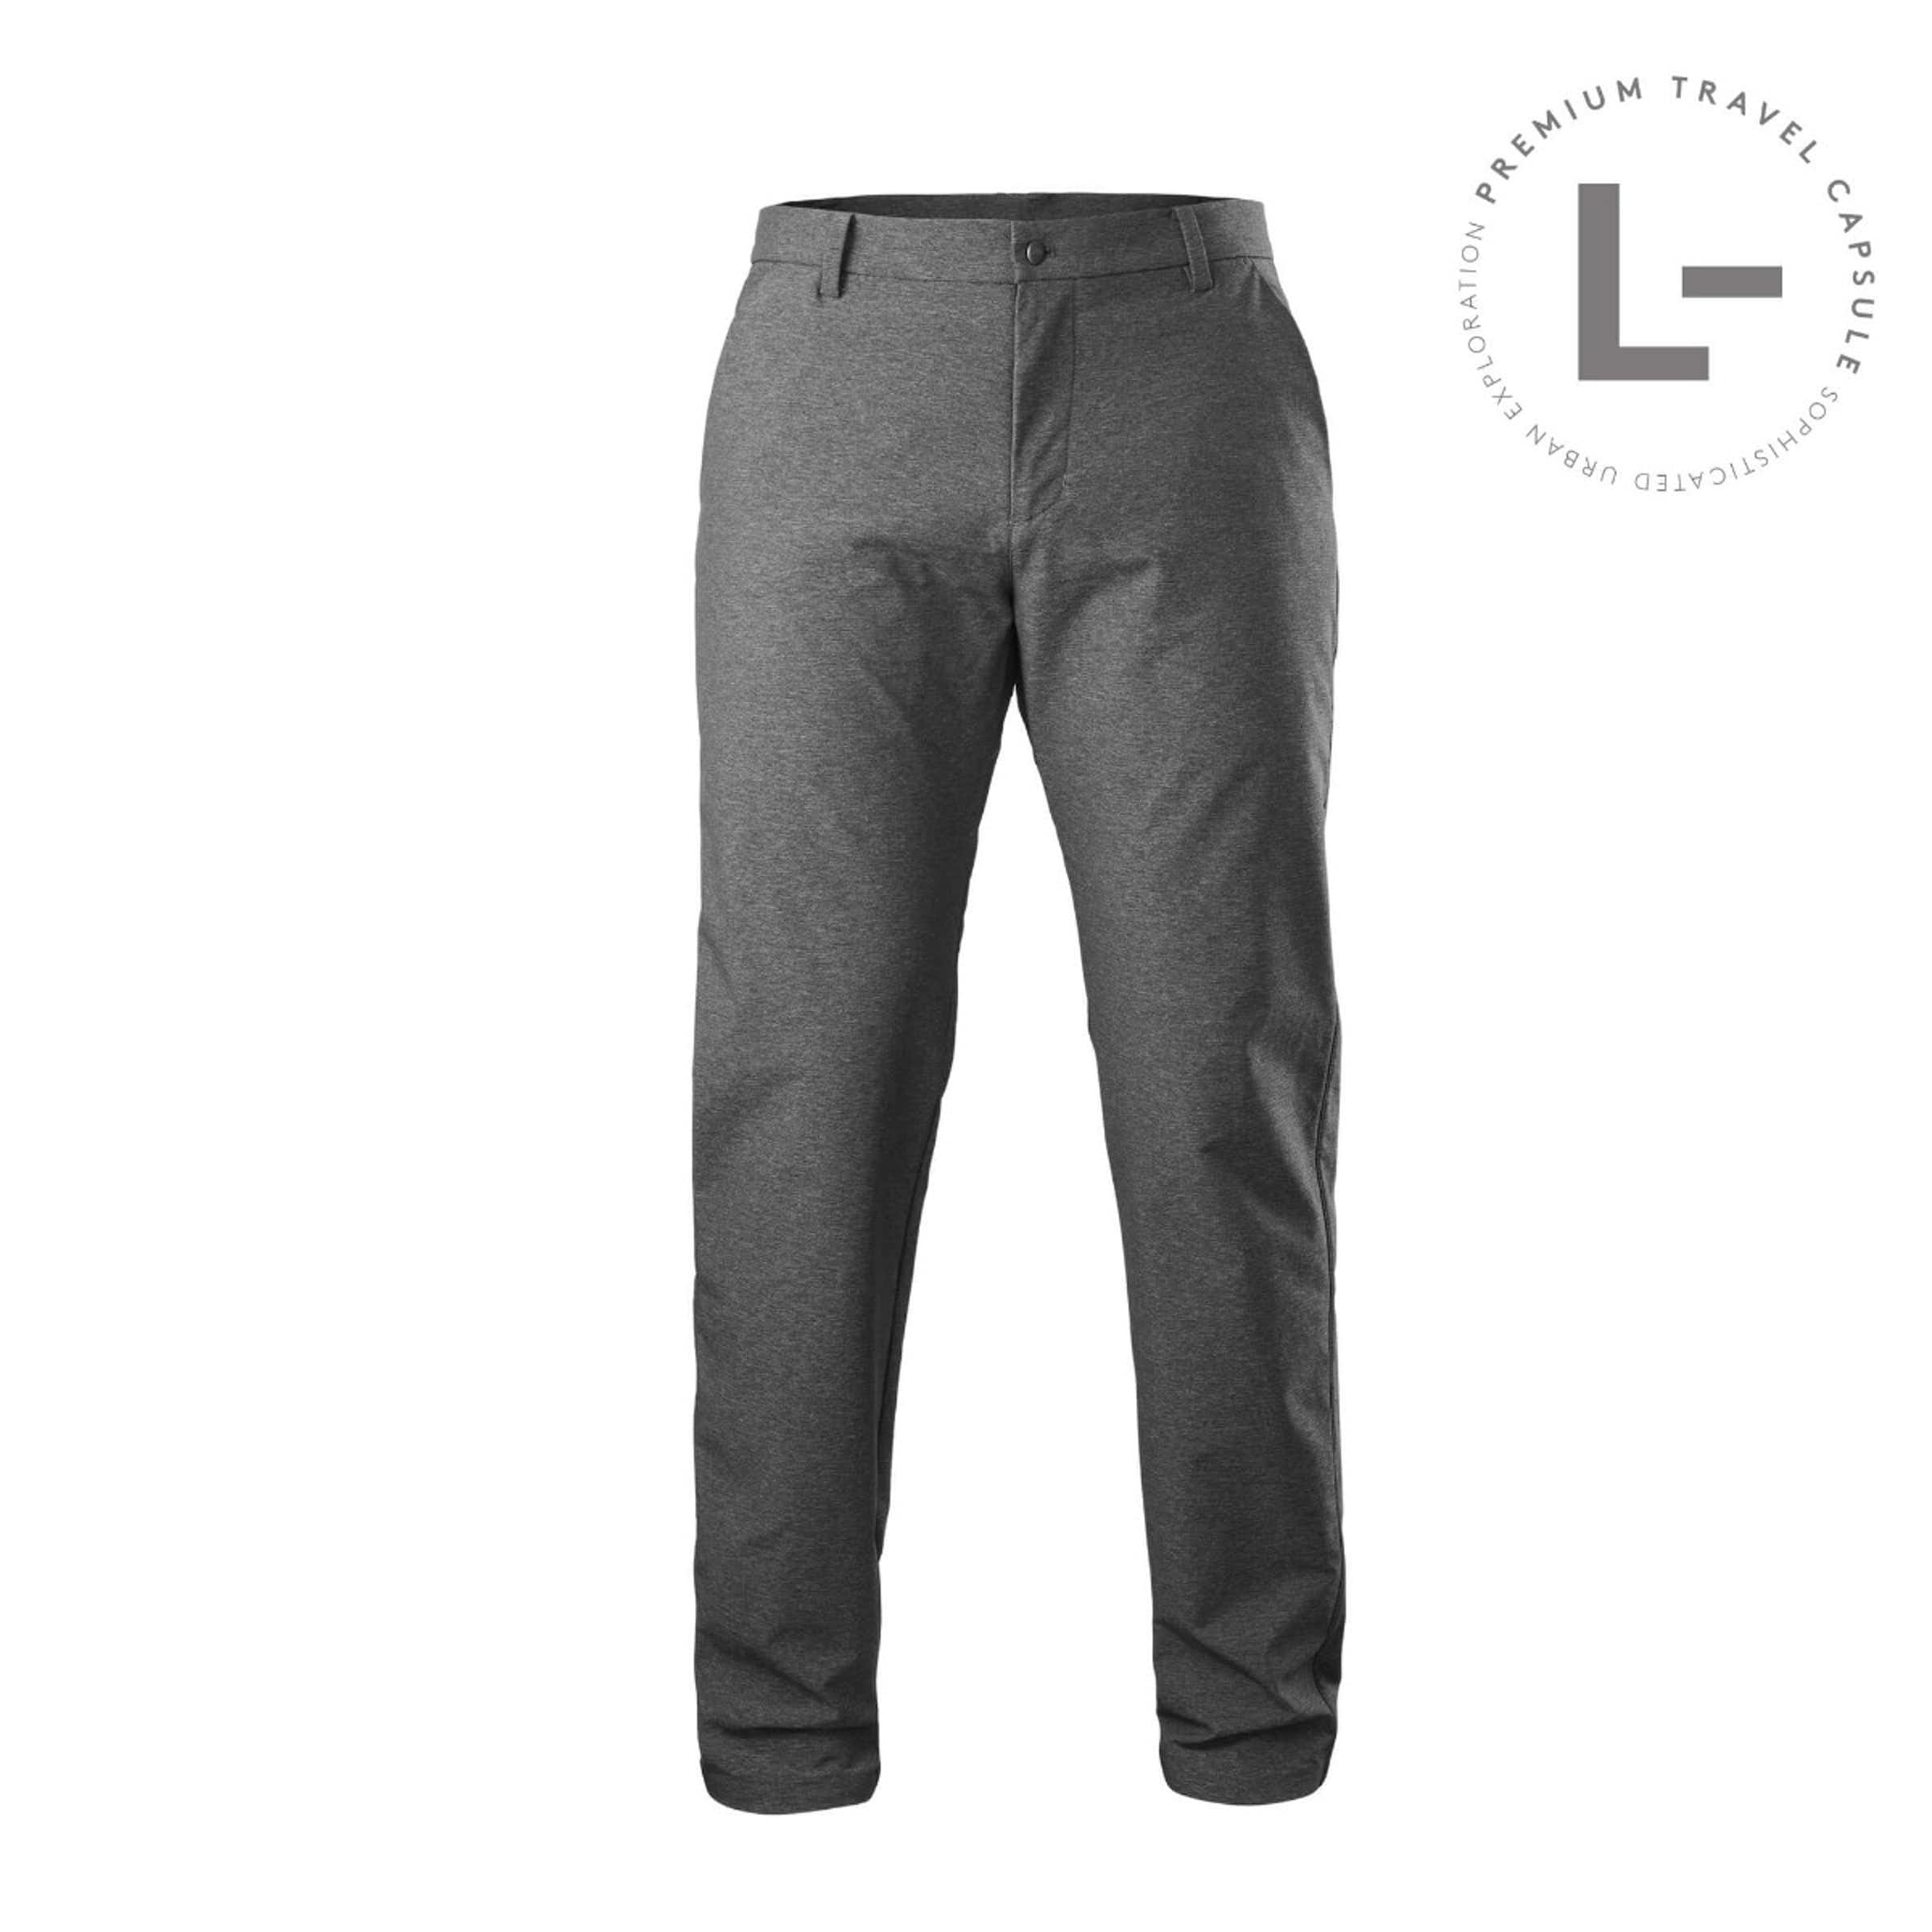 5a040a7666 Men's Pants & Shorts | Travel, Hiking & Outdoor Pants | AU